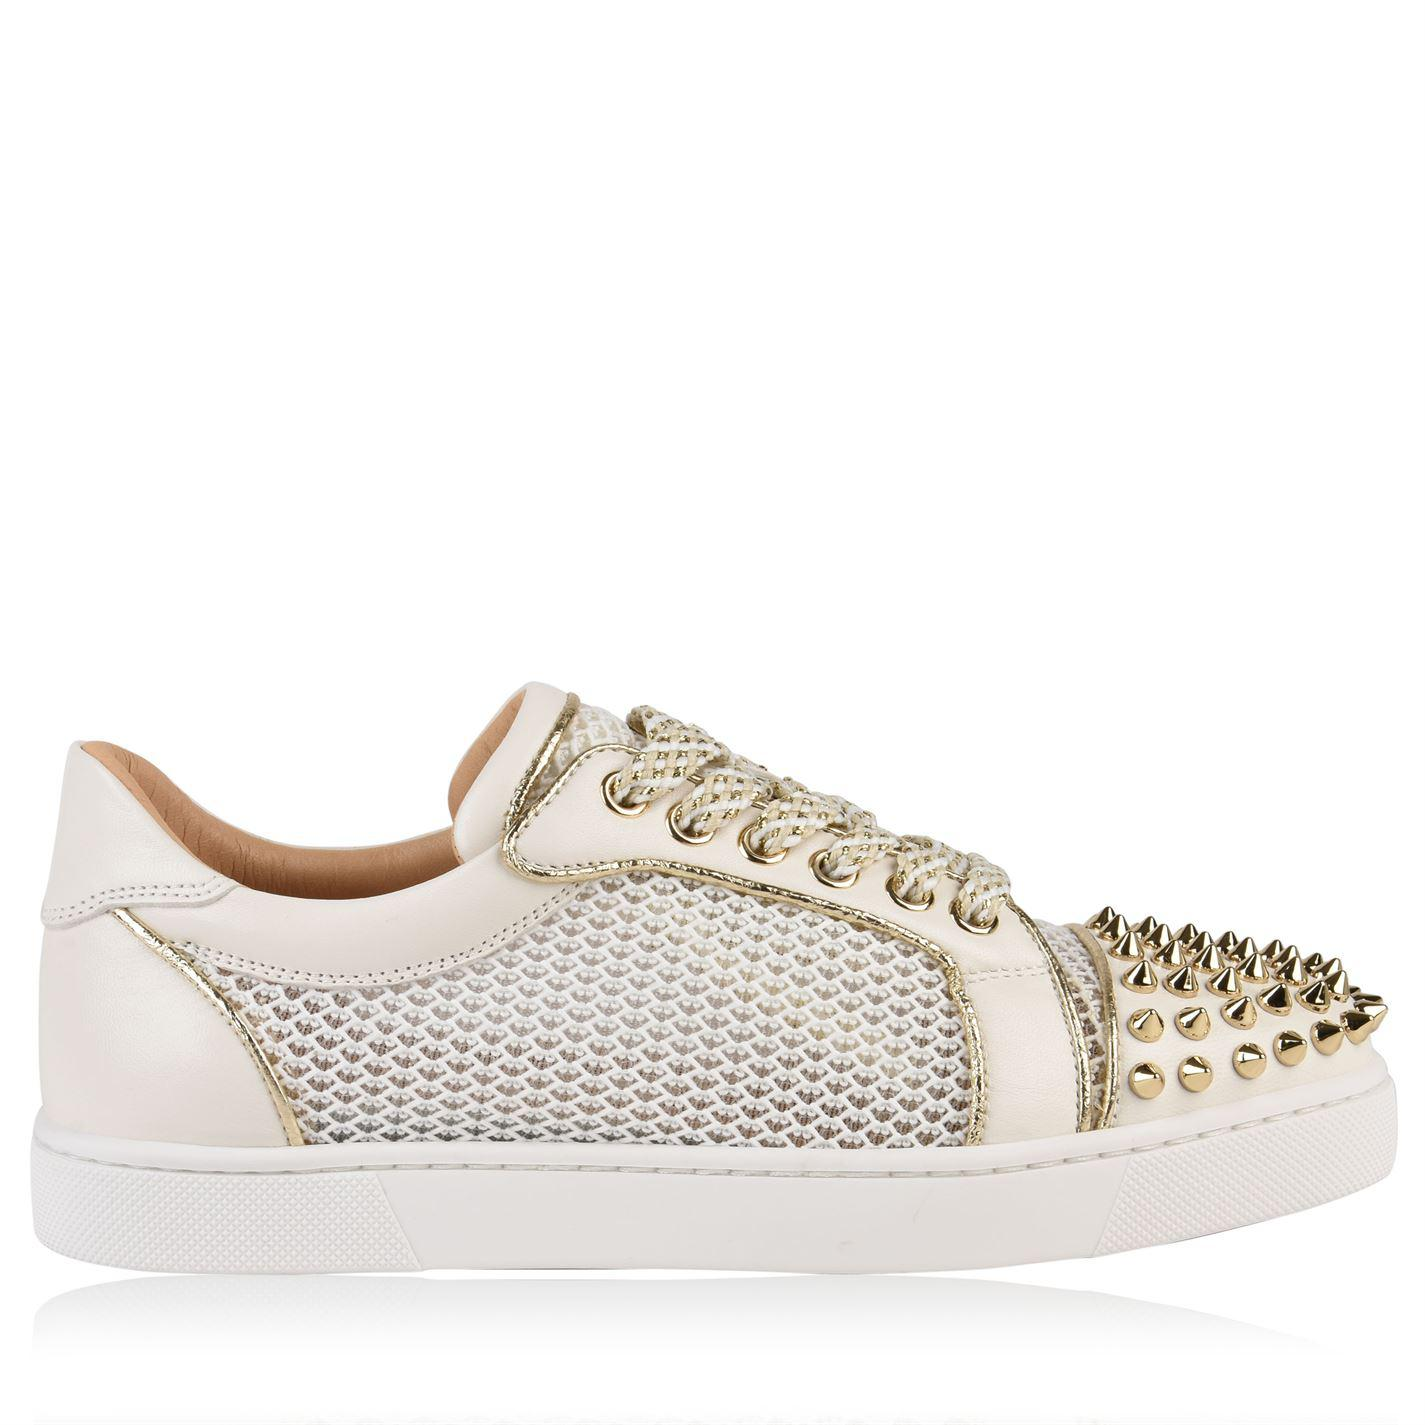 75435095b805 Gallery. Previously sold at  Flannels · Women s Christian Louboutin Spike  ...